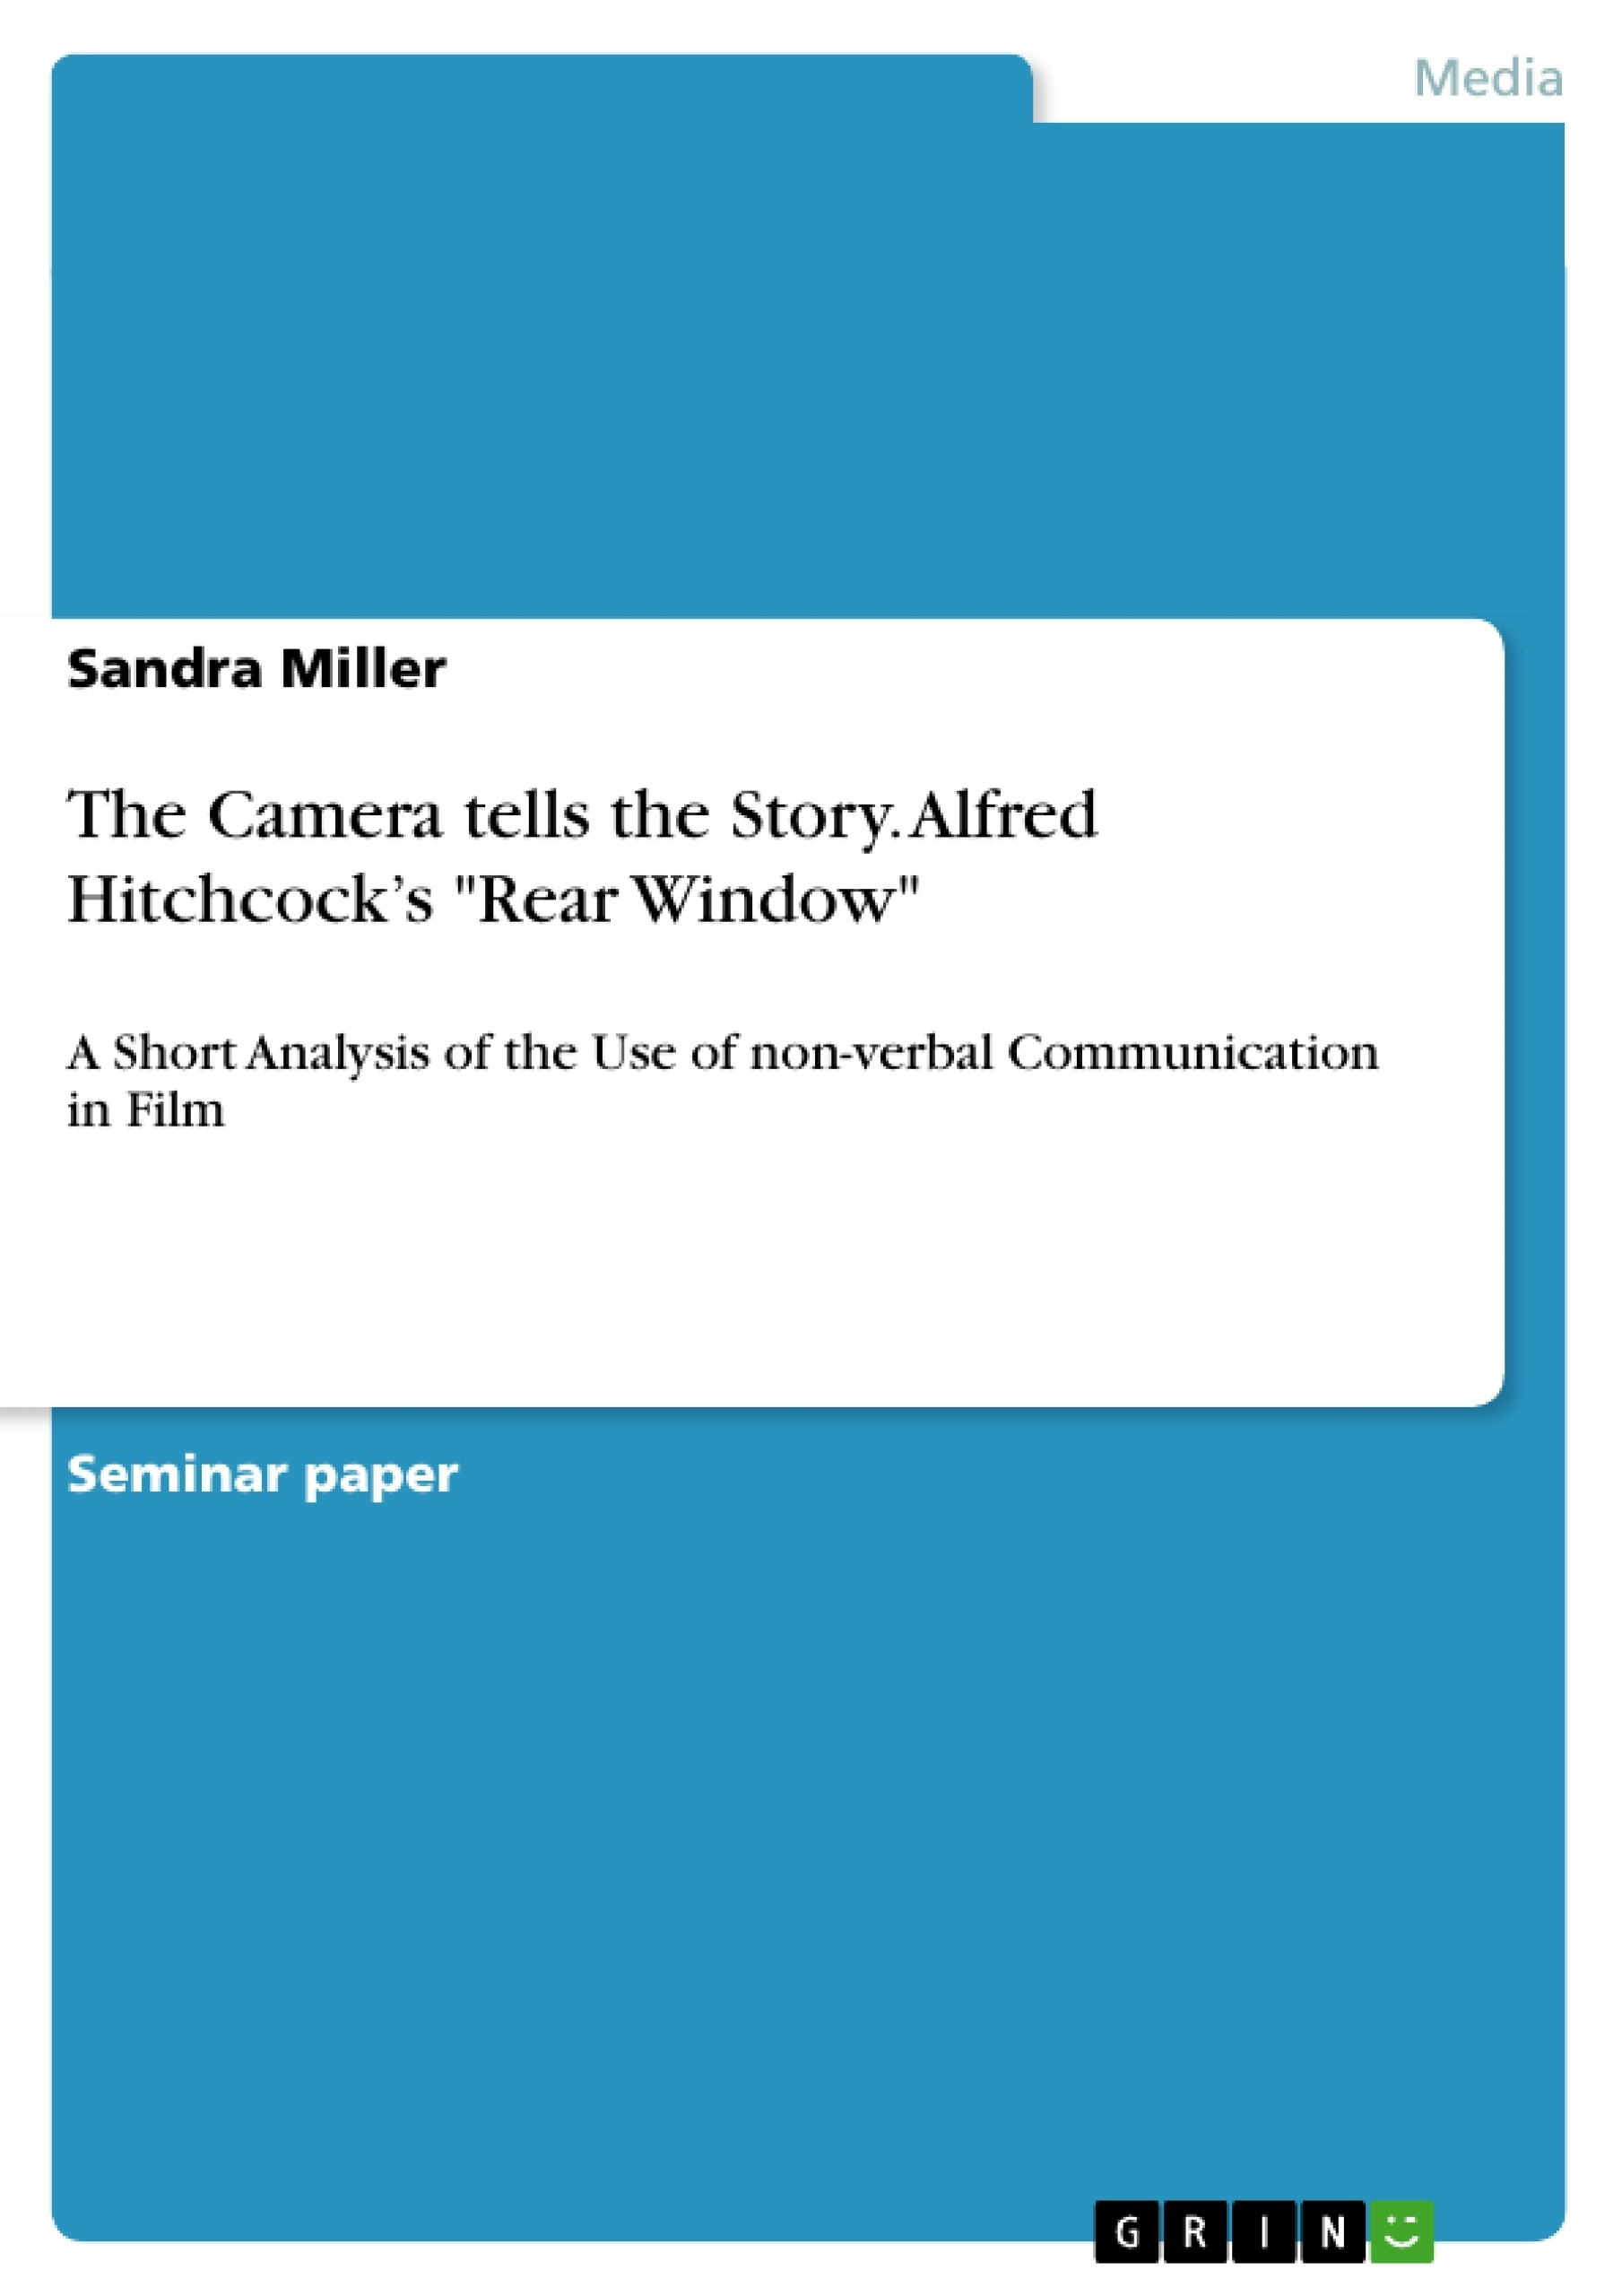 """Title: The Camera tells the Story. Alfred Hitchcock's """"Rear Window"""""""